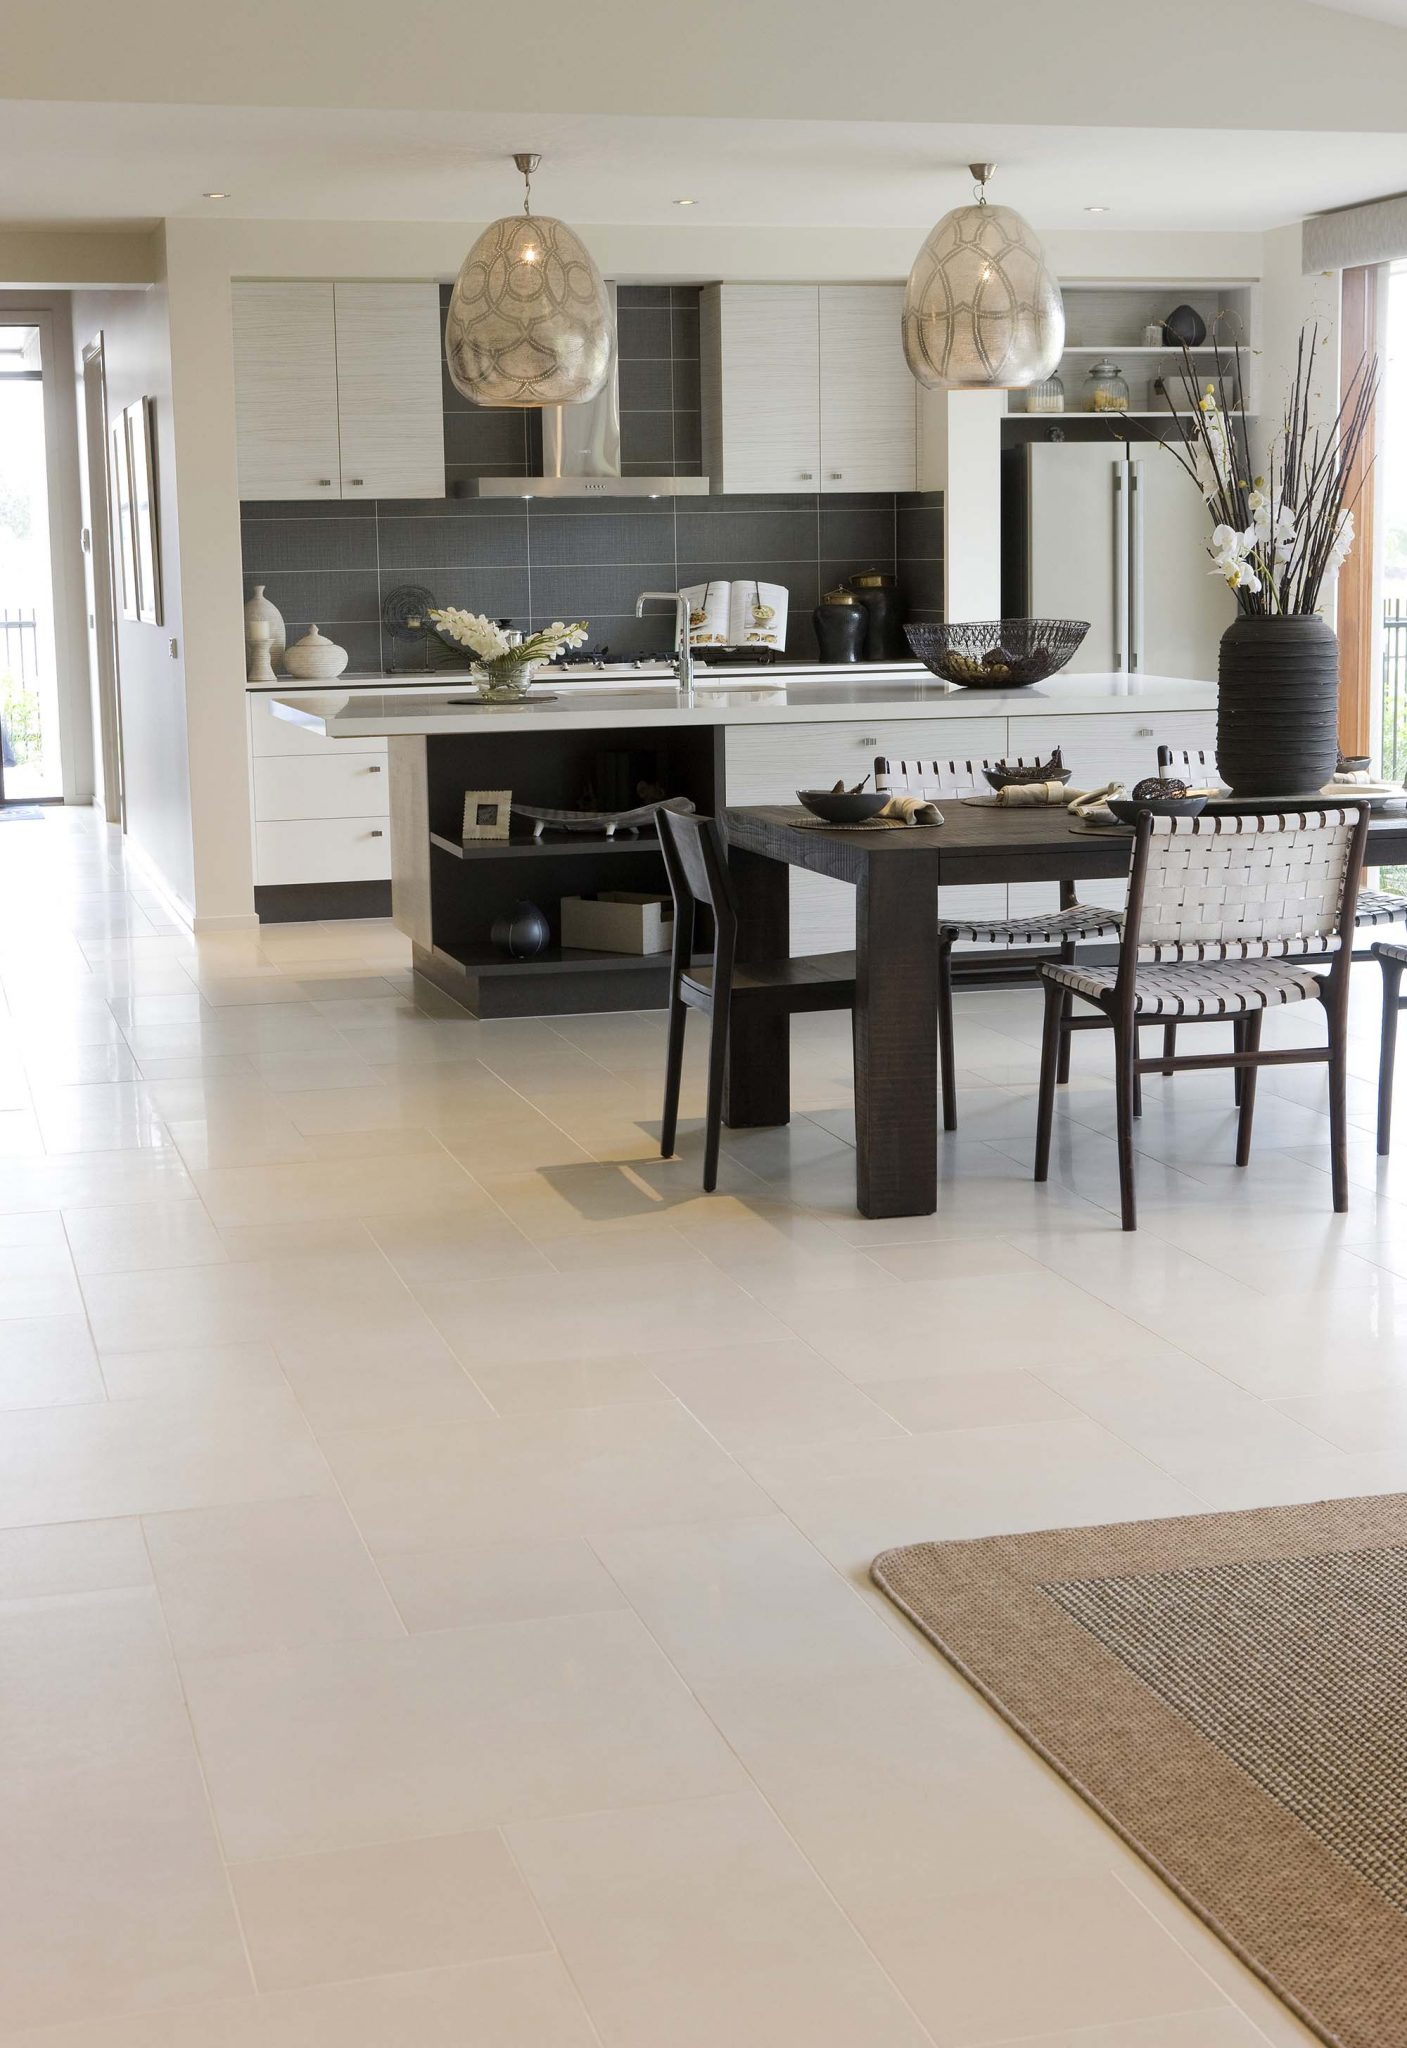 Living lifes tiles floor super white polished 600x600 floor exile biscuit feature alaska charcoal dailygadgetfo Gallery